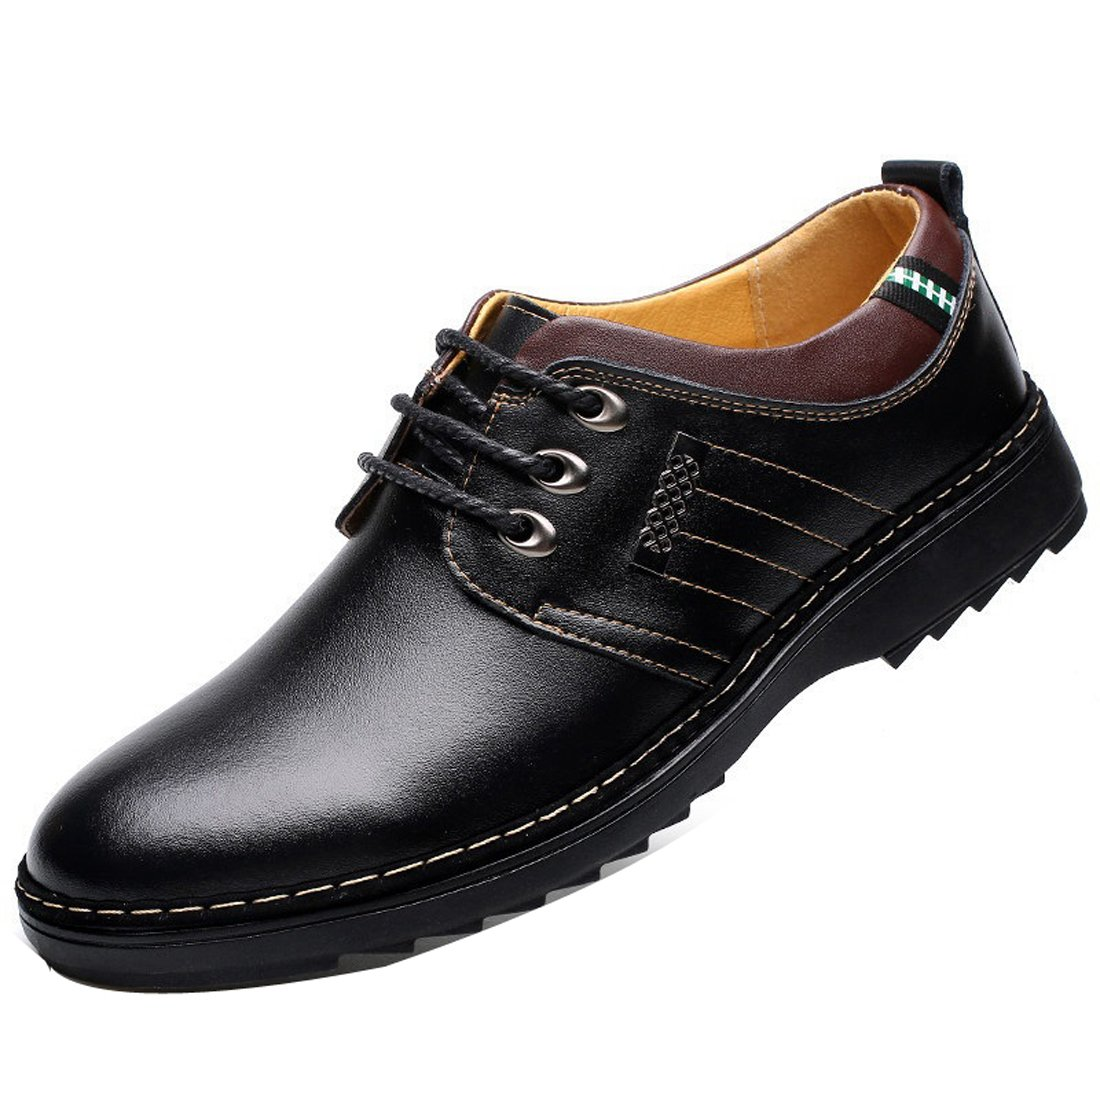 Men's Synthetic Leather Lace-up Oxfords Shoes Dress Shoes Formal Leather Shoes Casual Classic Brogue Shoes